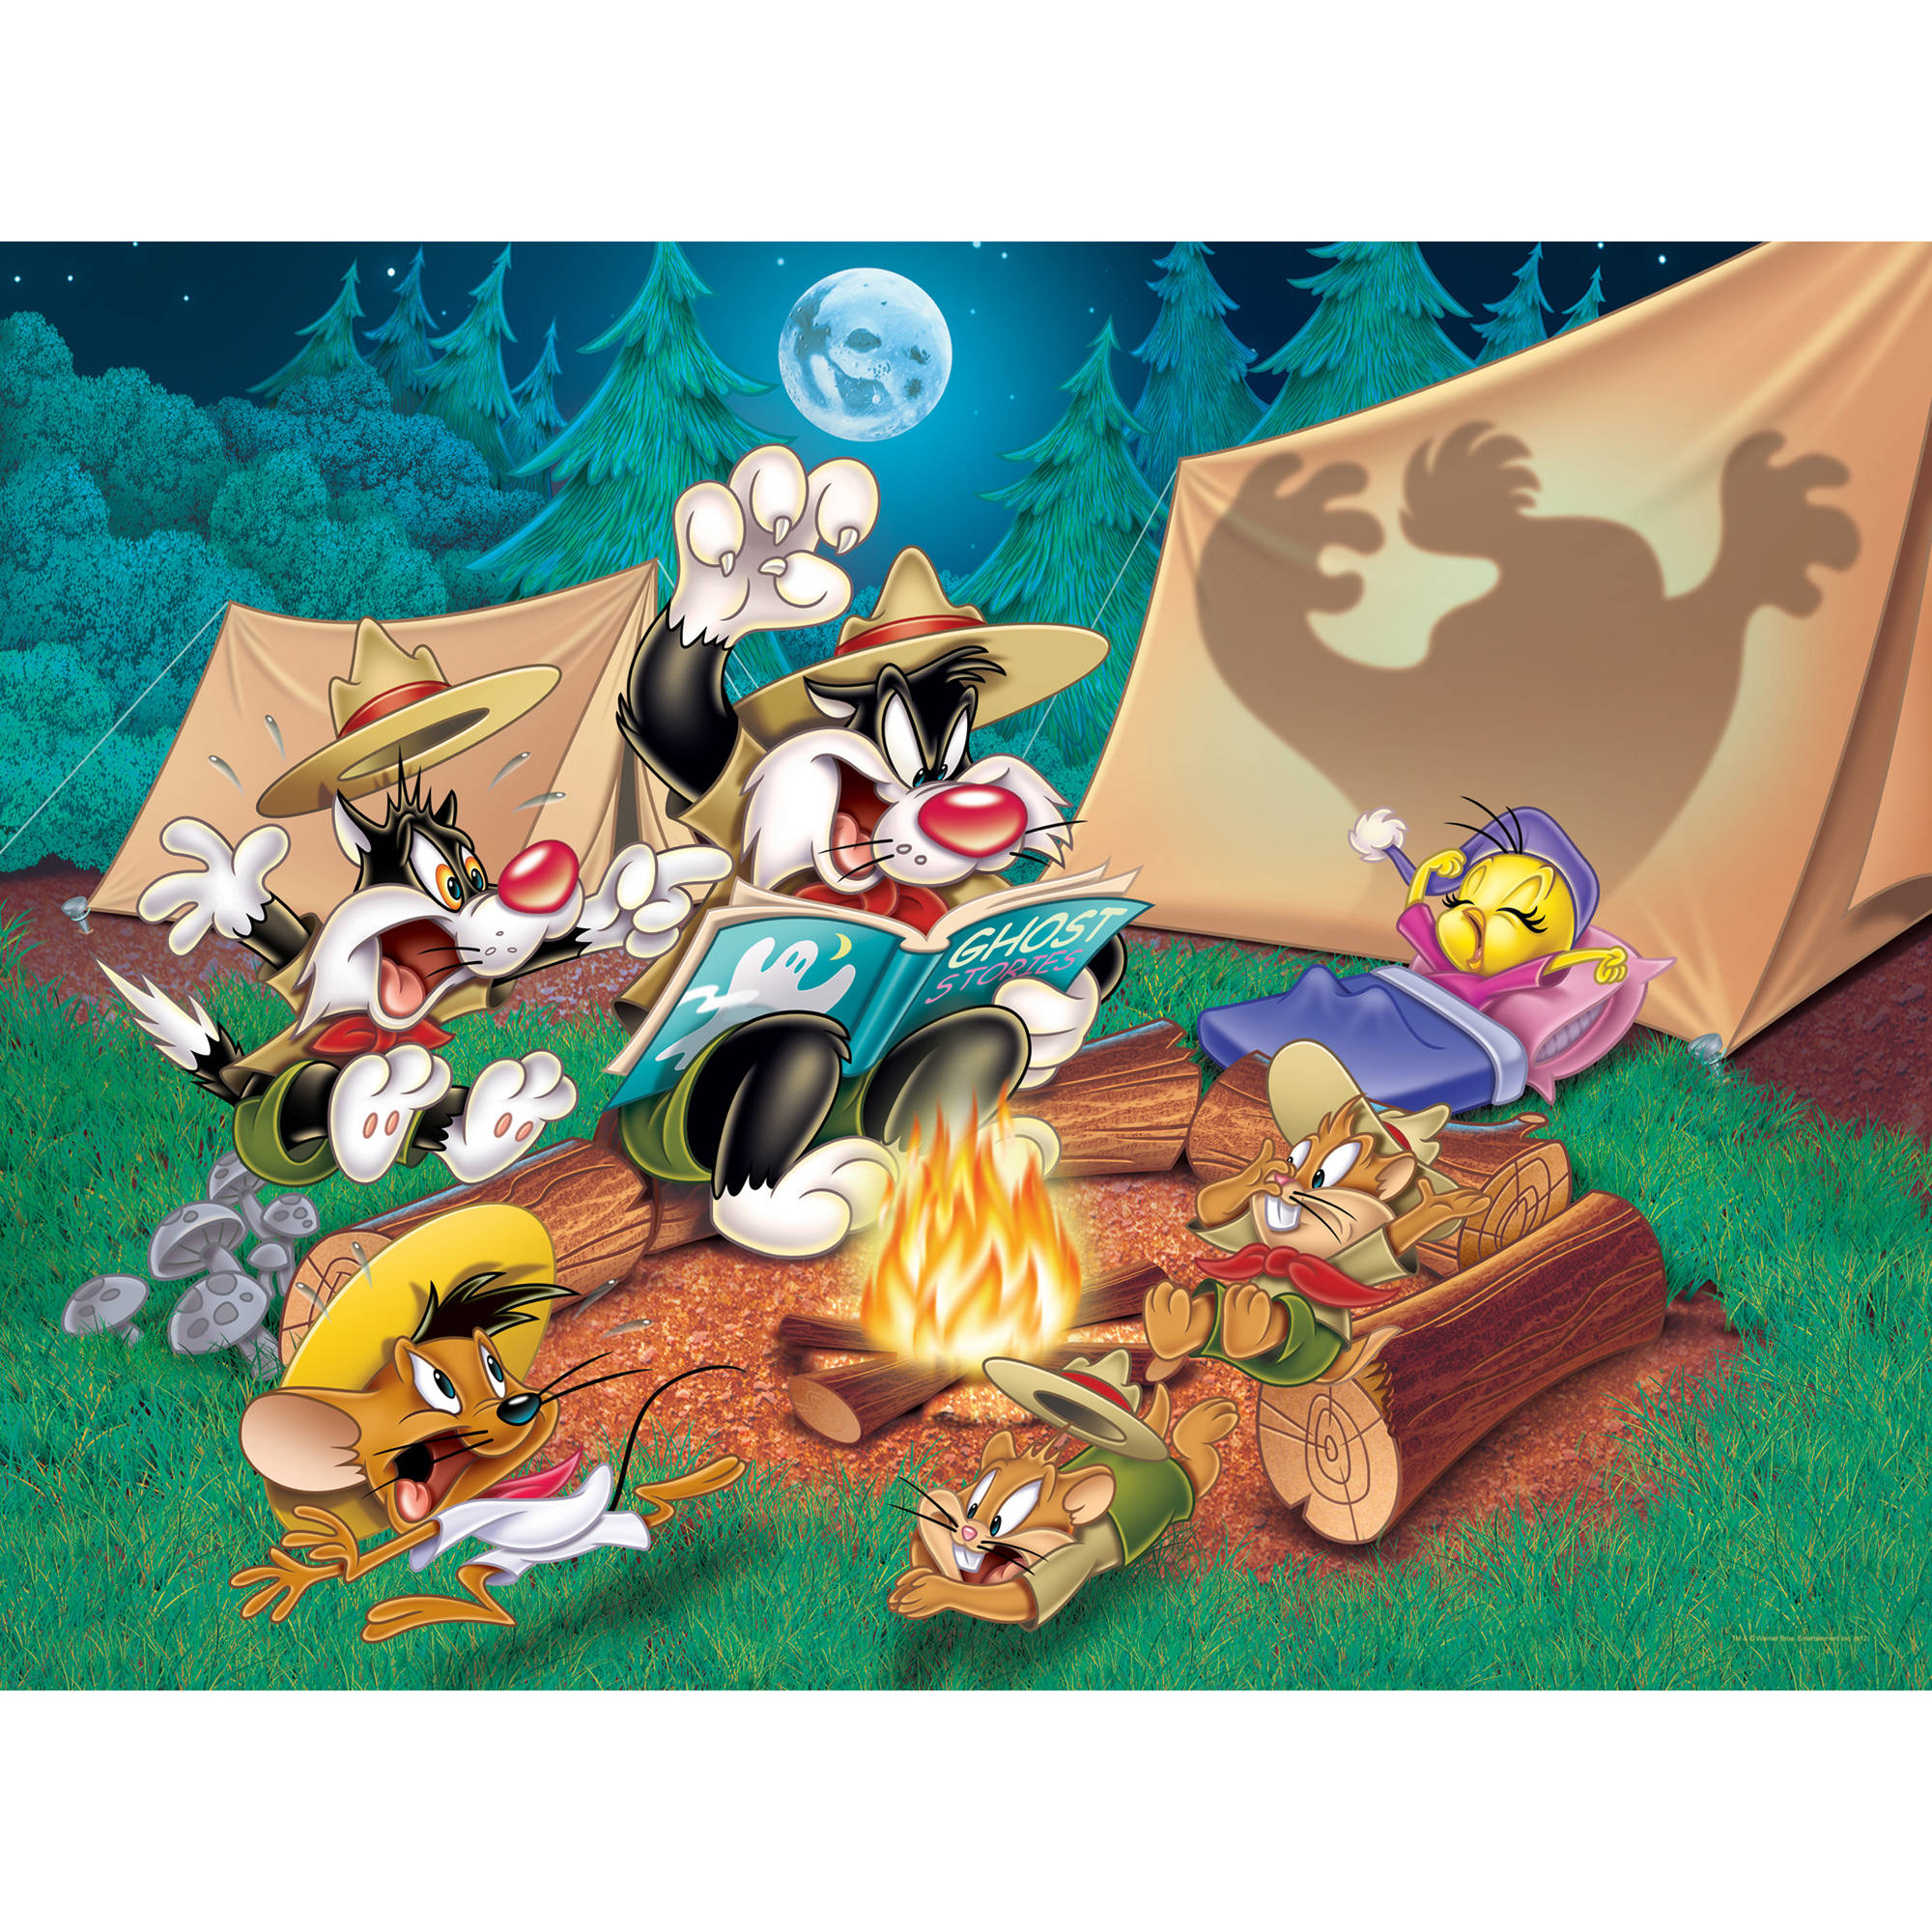 Sylvester and Tweety Camping Wall Art